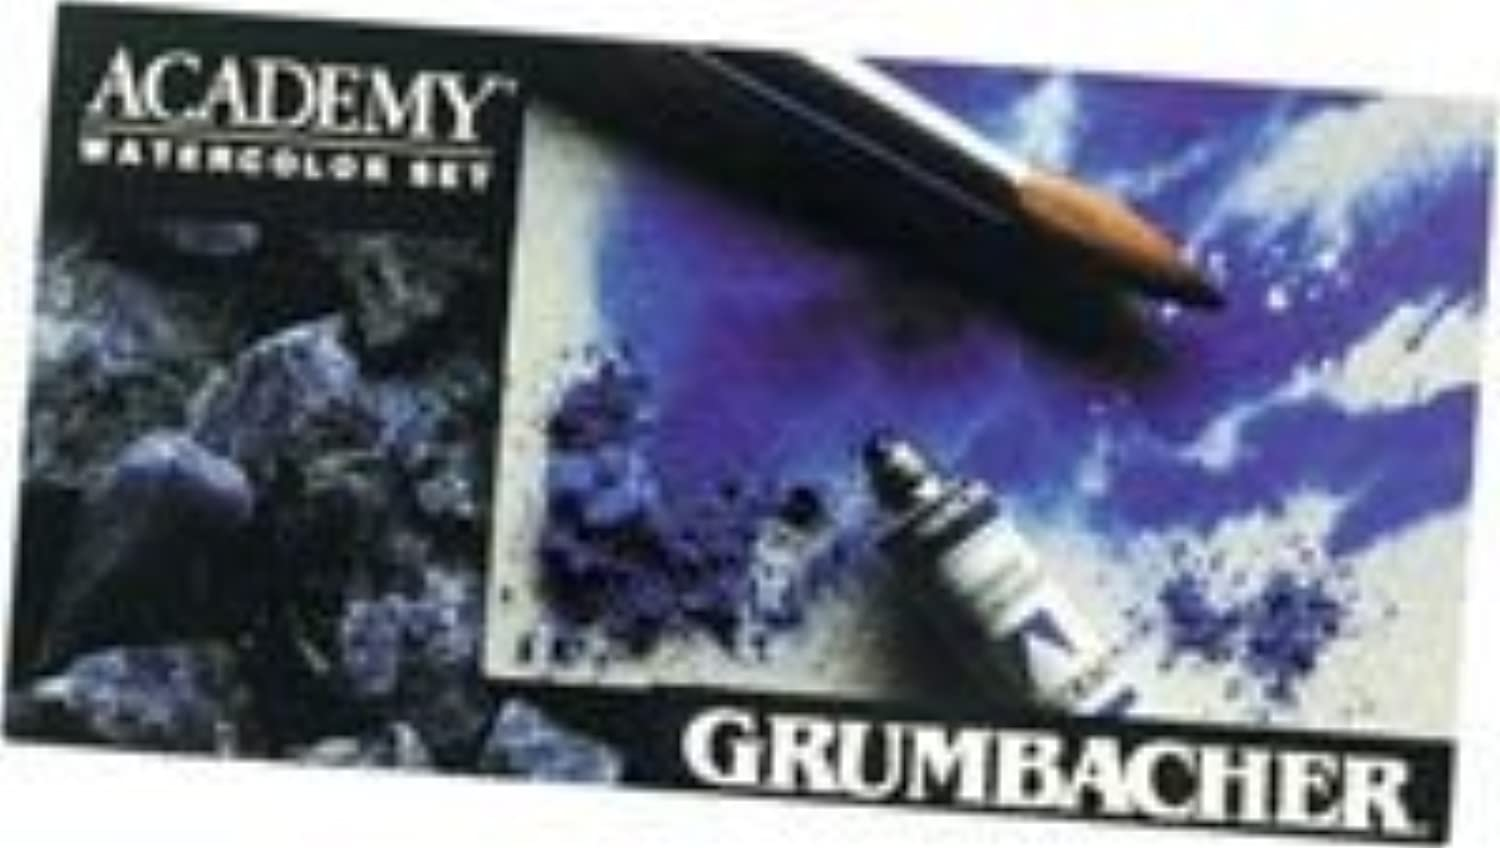 Grumbacher A133 Academy Watercolors - Magnesium Green